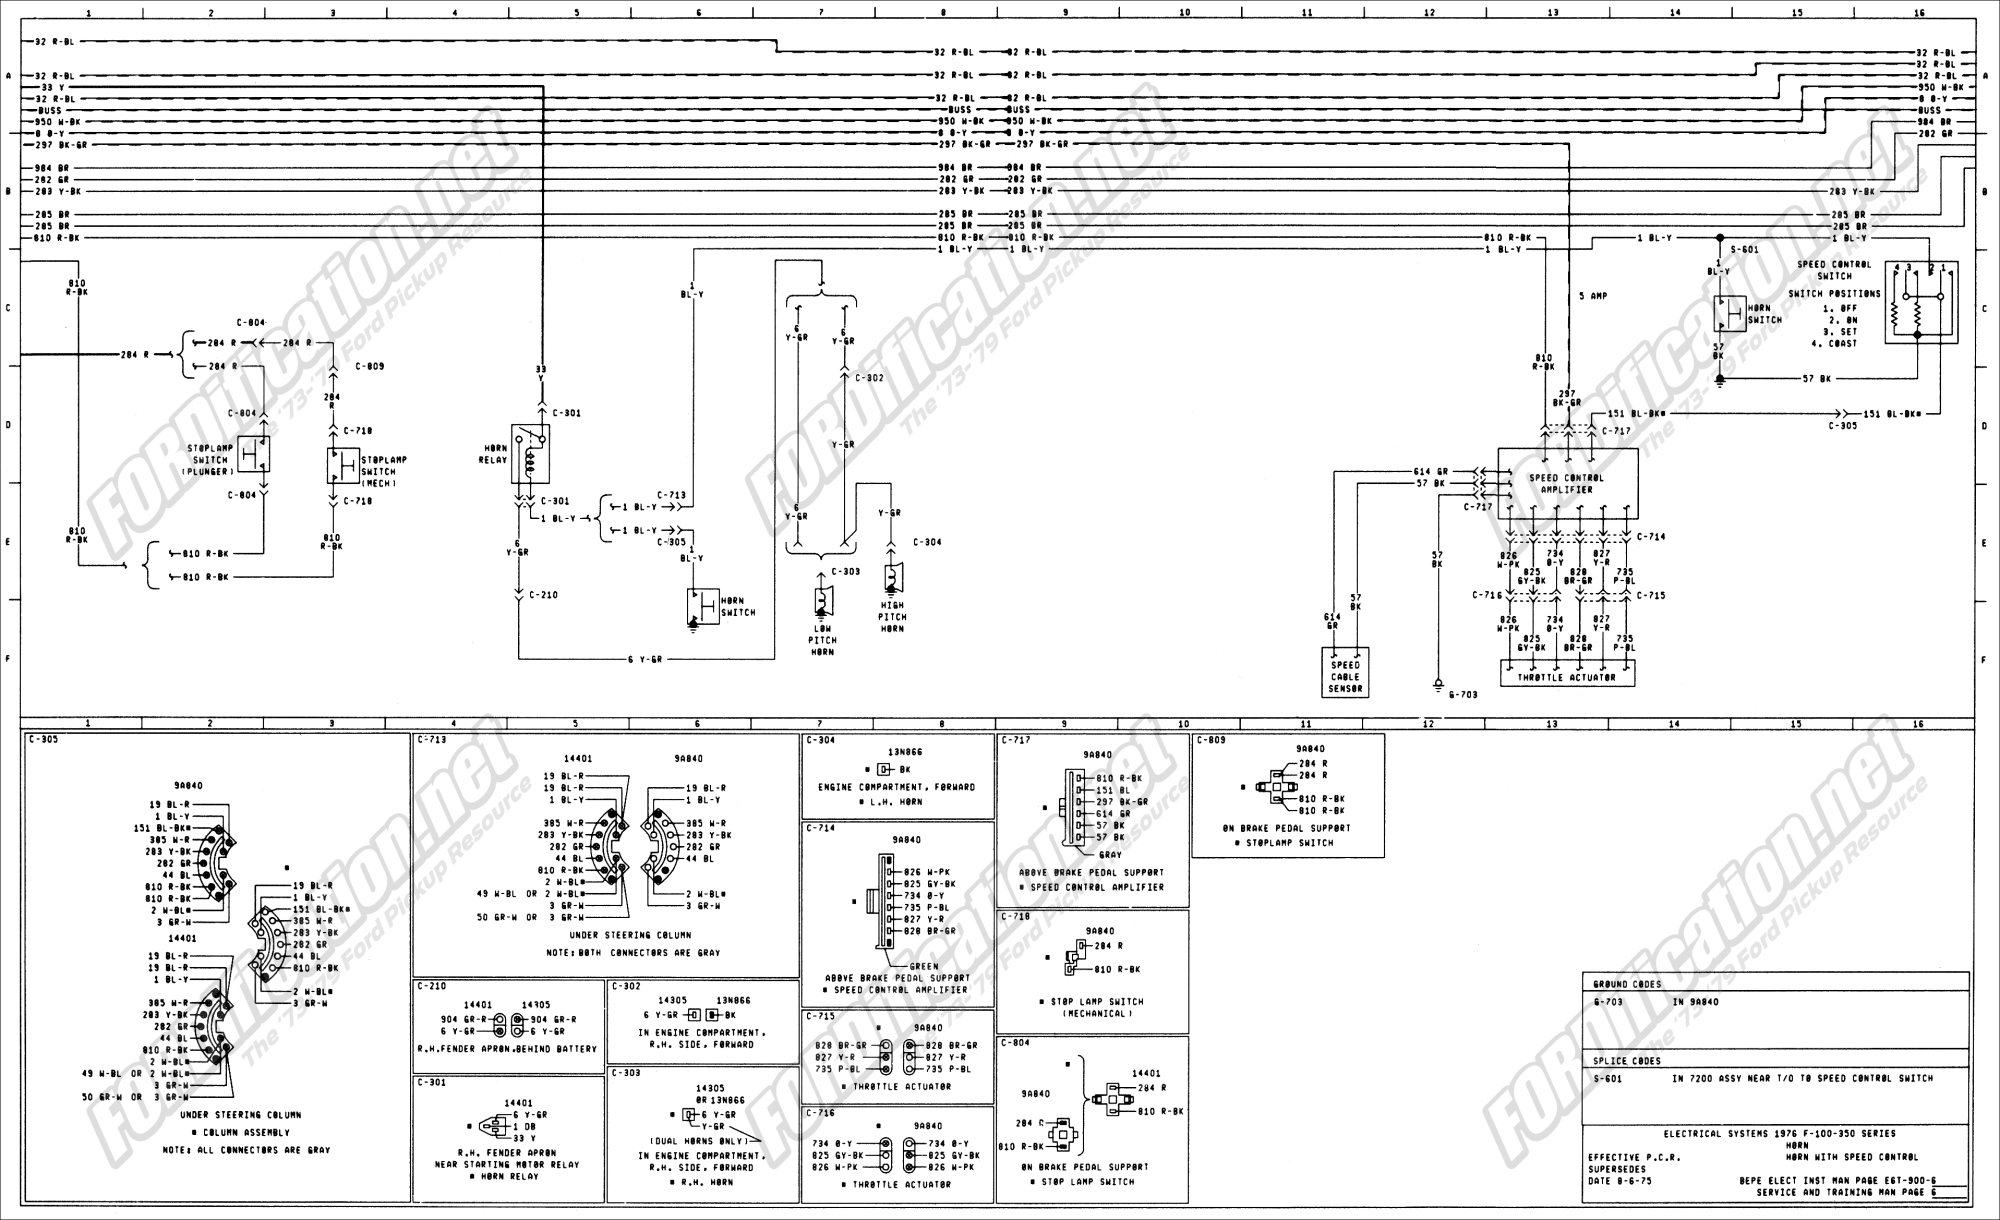 hight resolution of 1989 ford f600 wiring diagram schematic wiring diagrams u2022 rh neotter com wiring diagram 1998 ford f800 wiring diagram ford f8000